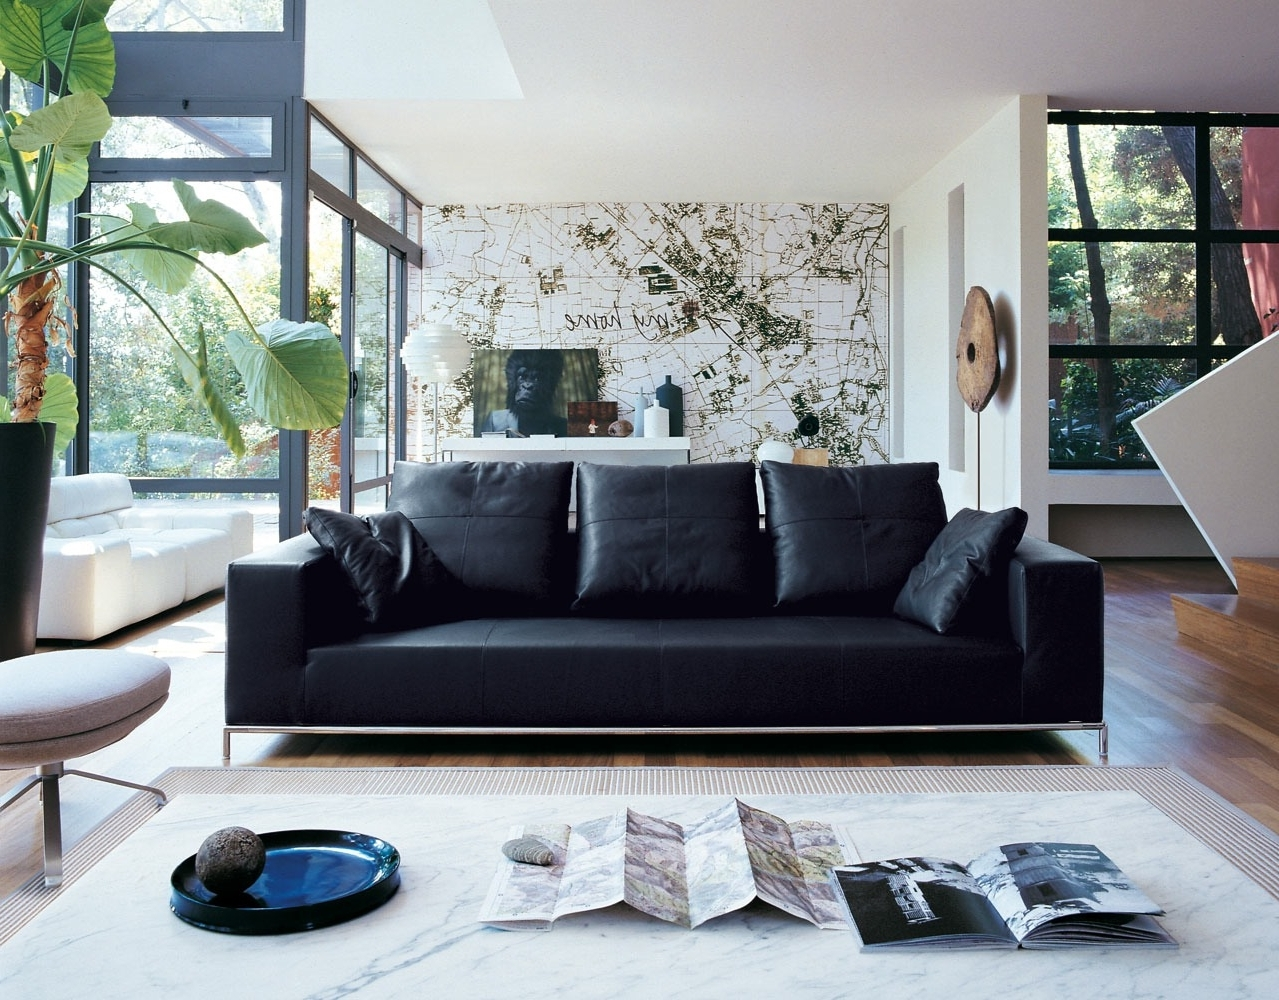 Decorating A Room With Black Leather Sofa Homedecorite 10+ Living Room Decorating Black Leather Couch Inspirations